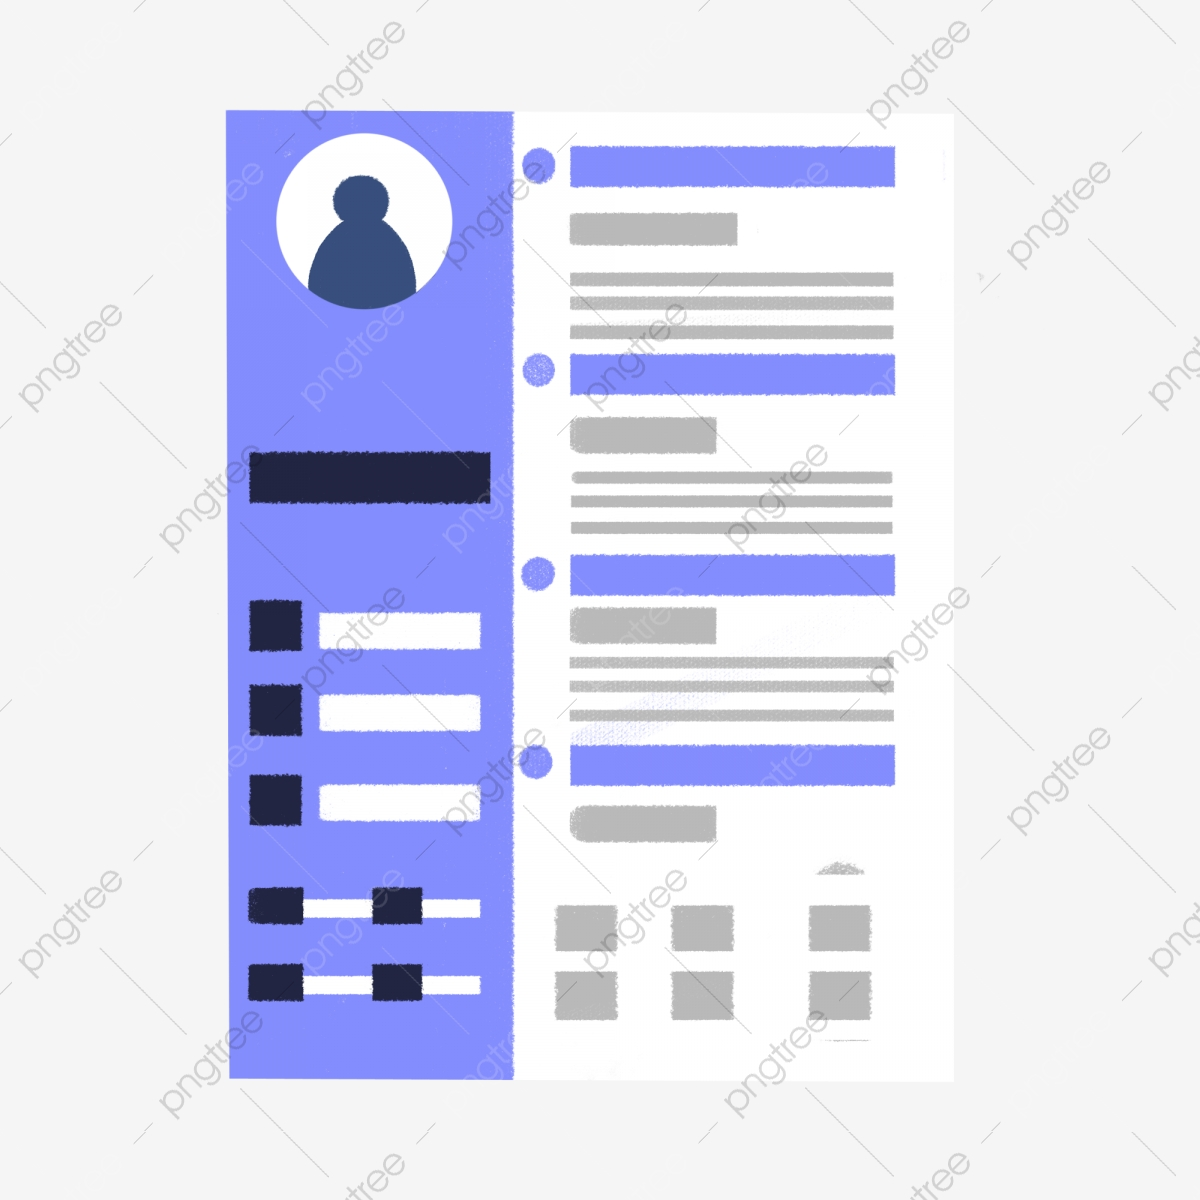 Cartoon Blue Resume Free Illustration Resume Resume Cartoon Design Png Transparent Clipart Image And Psd File For Free Download